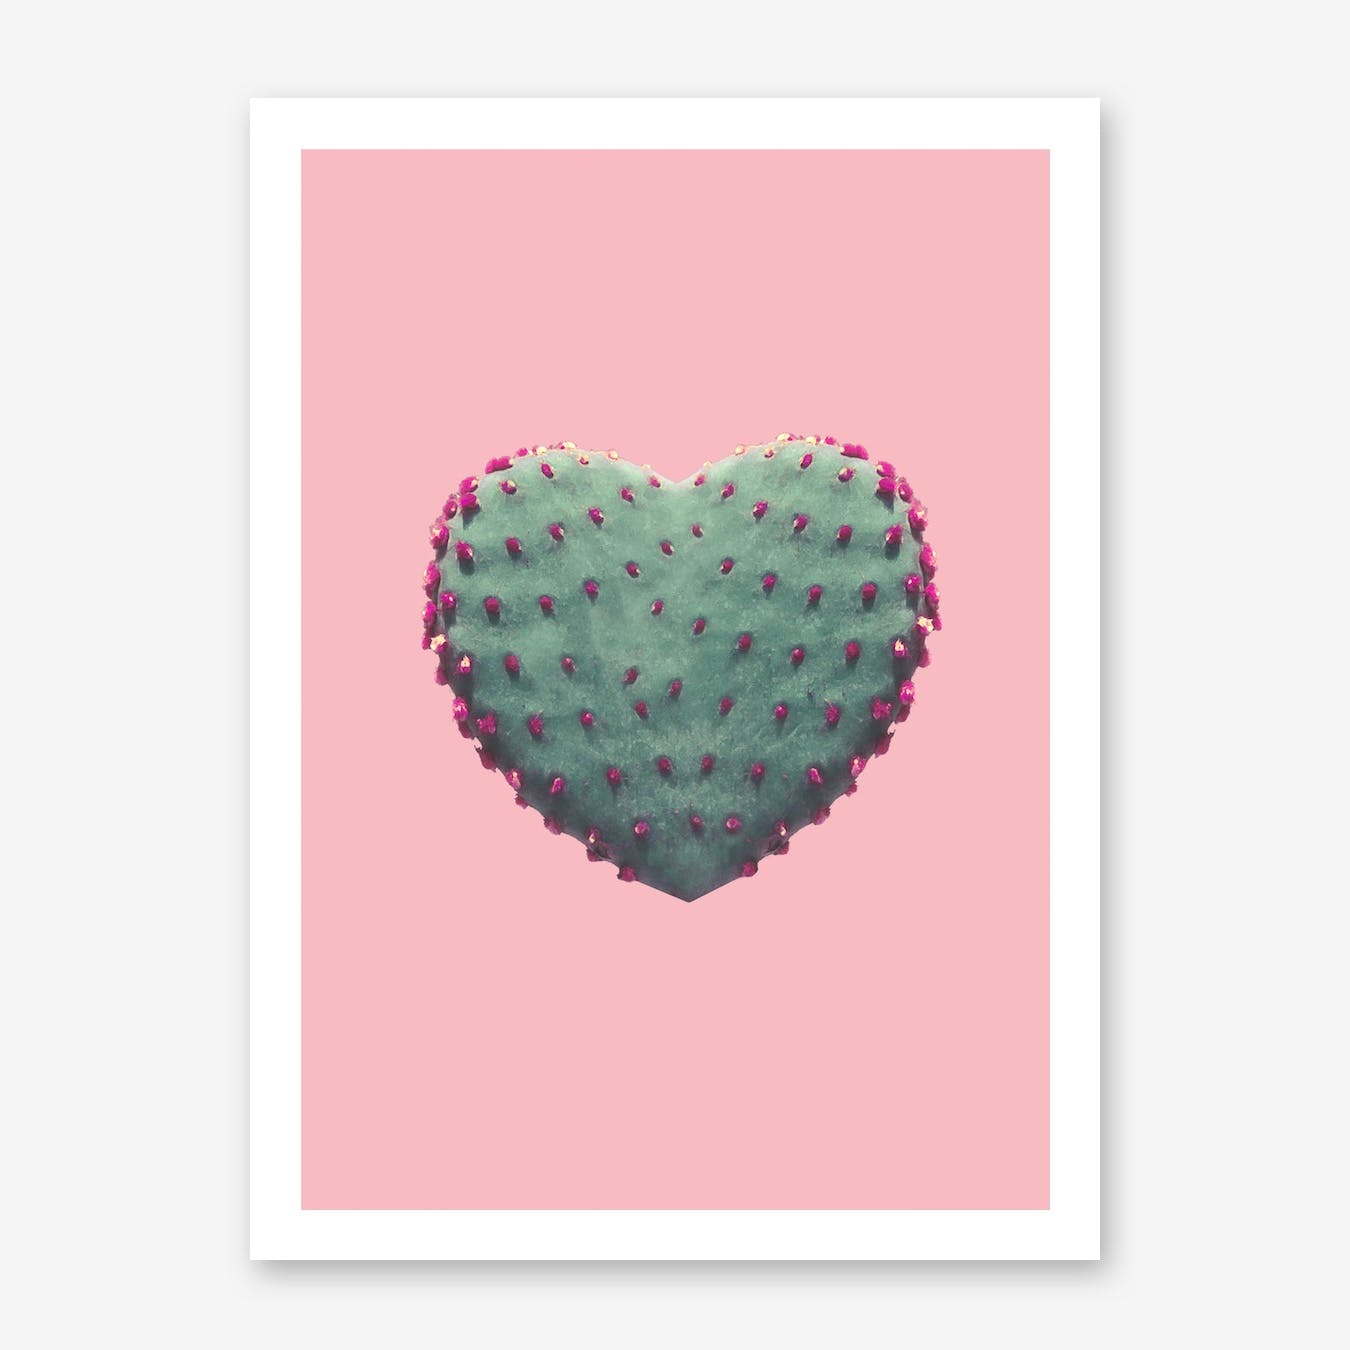 Cacts Heart Print